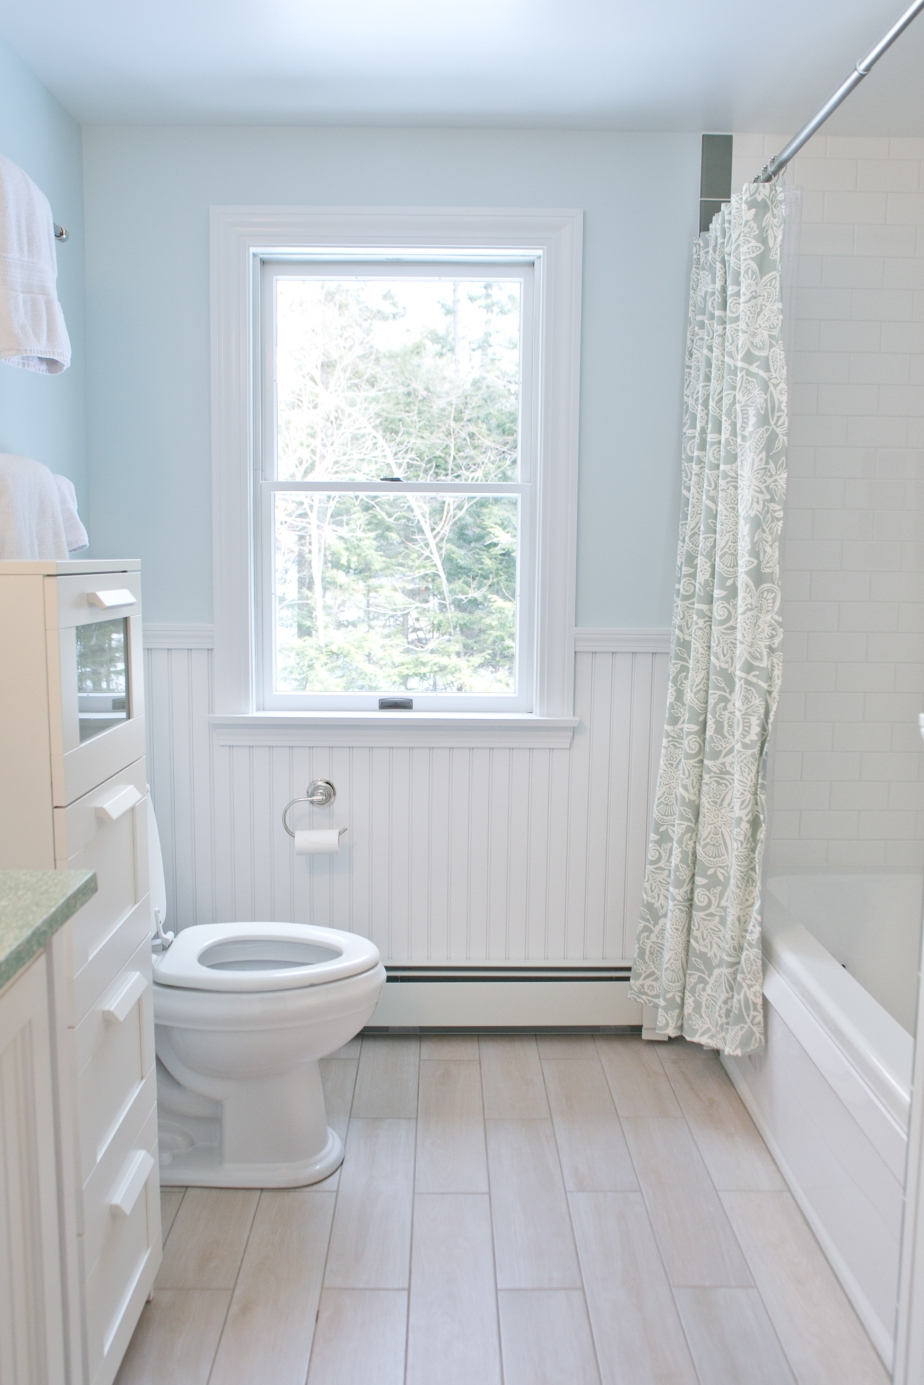 Budgeting for a small bathroom